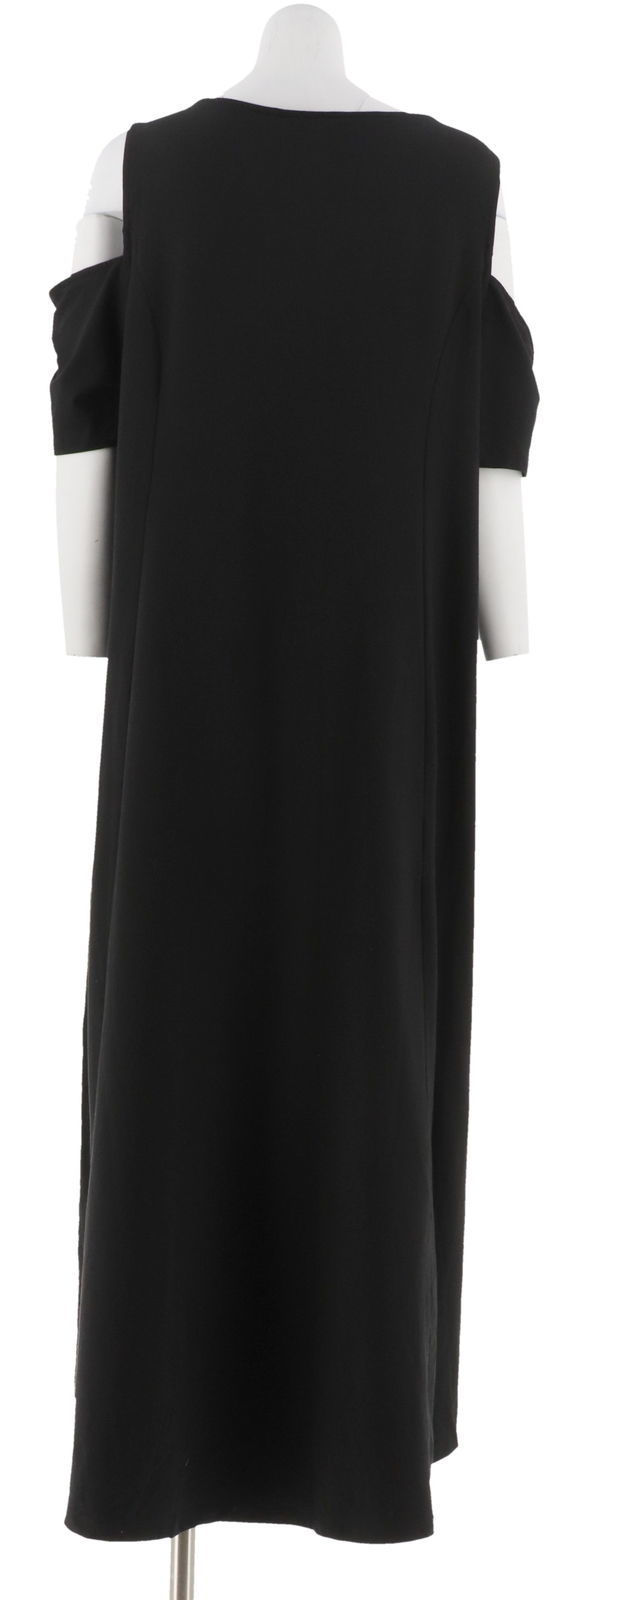 Isaac Mizrahi Cold Shoulder Hi-Low Hem Maxi Dress Black XS NEW A306458